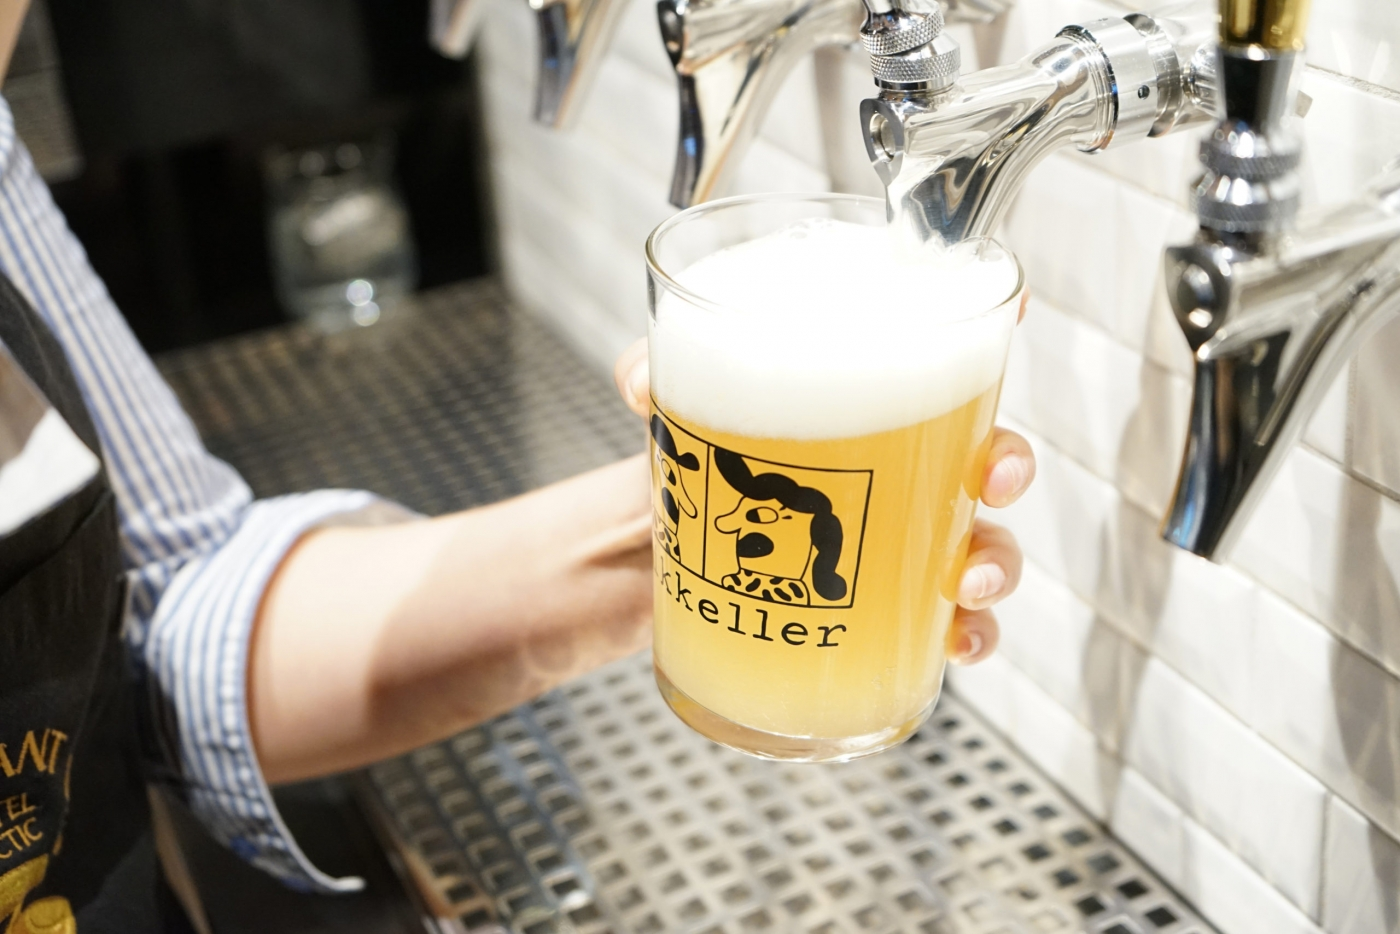 Mikkeller beer on tap at the Brasserie Ulo. Photo by Brasserie Ulo - Hotel Arctic